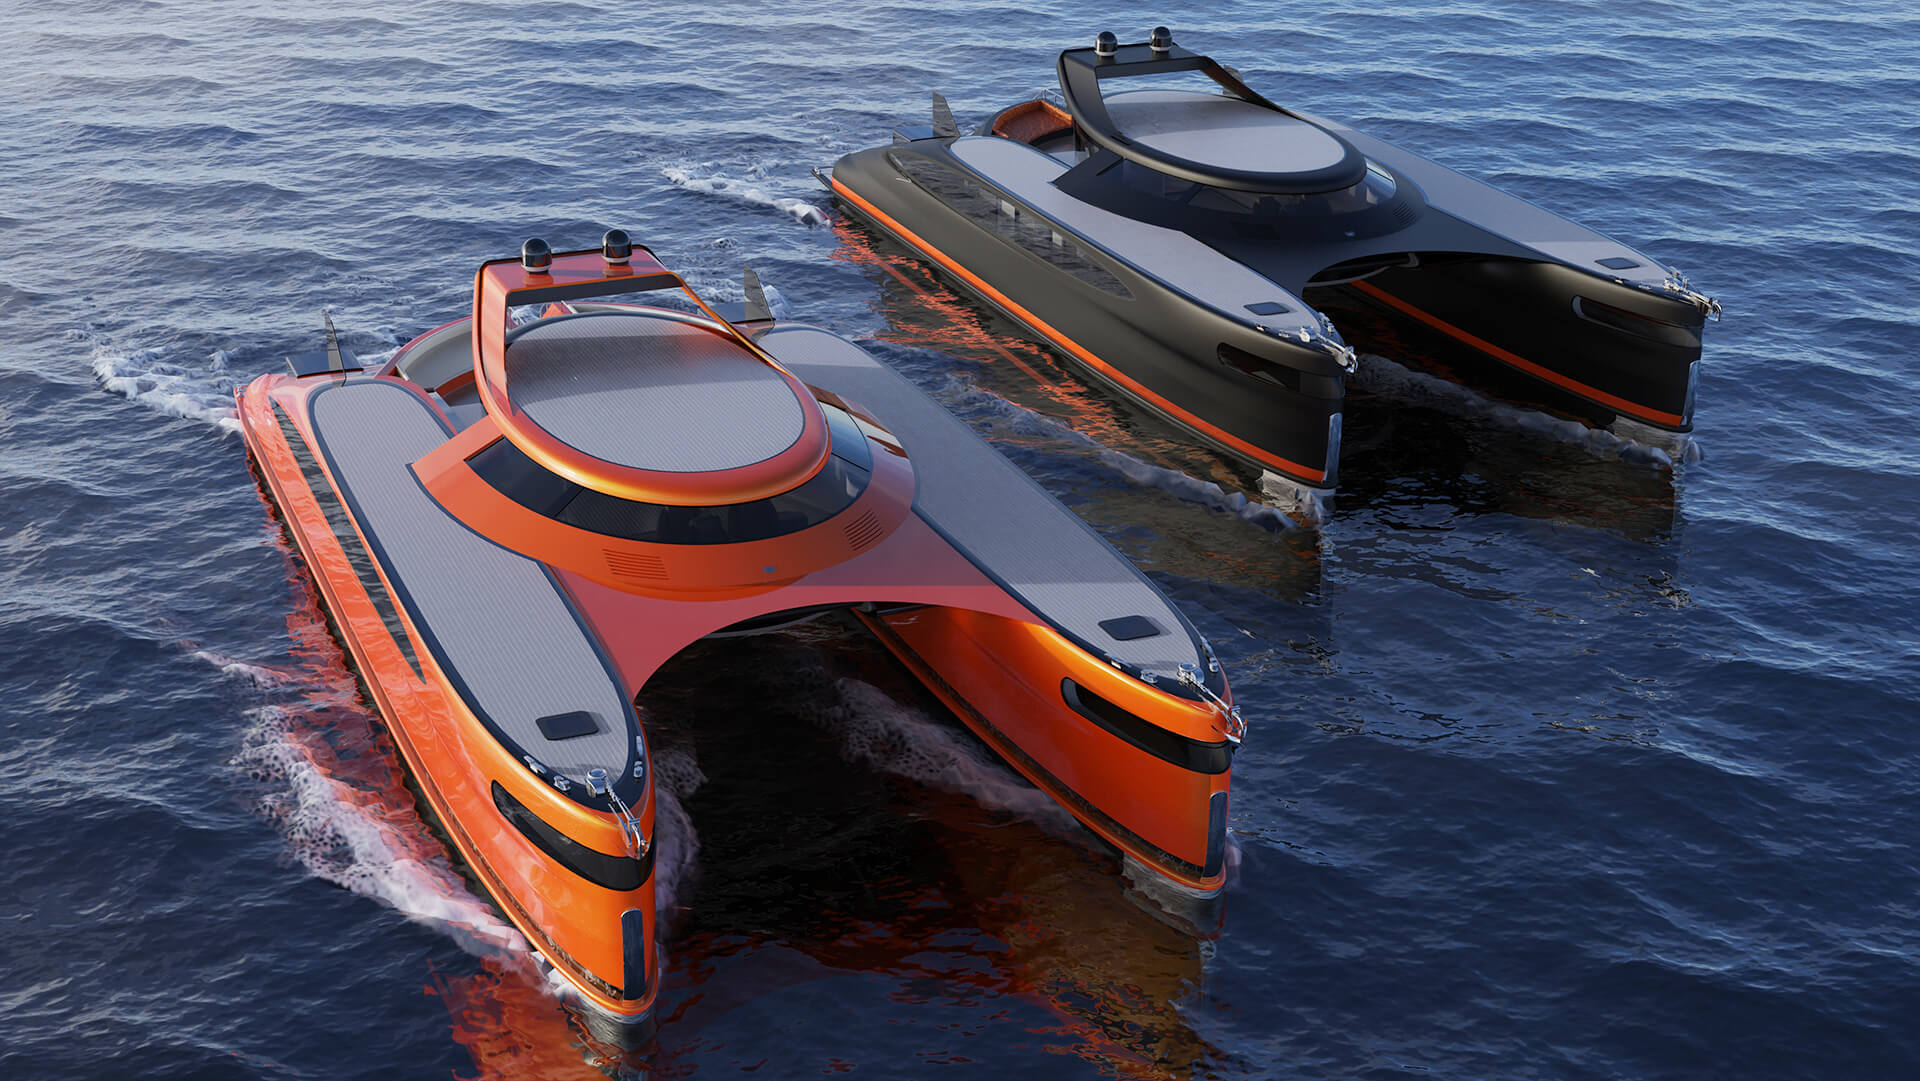 The Pagurus can be availed in other colours with the painted over dry carbon fiber body | Pagurus Amphibious Catamaran | Pierpaolo Lazzarini | STIRworld